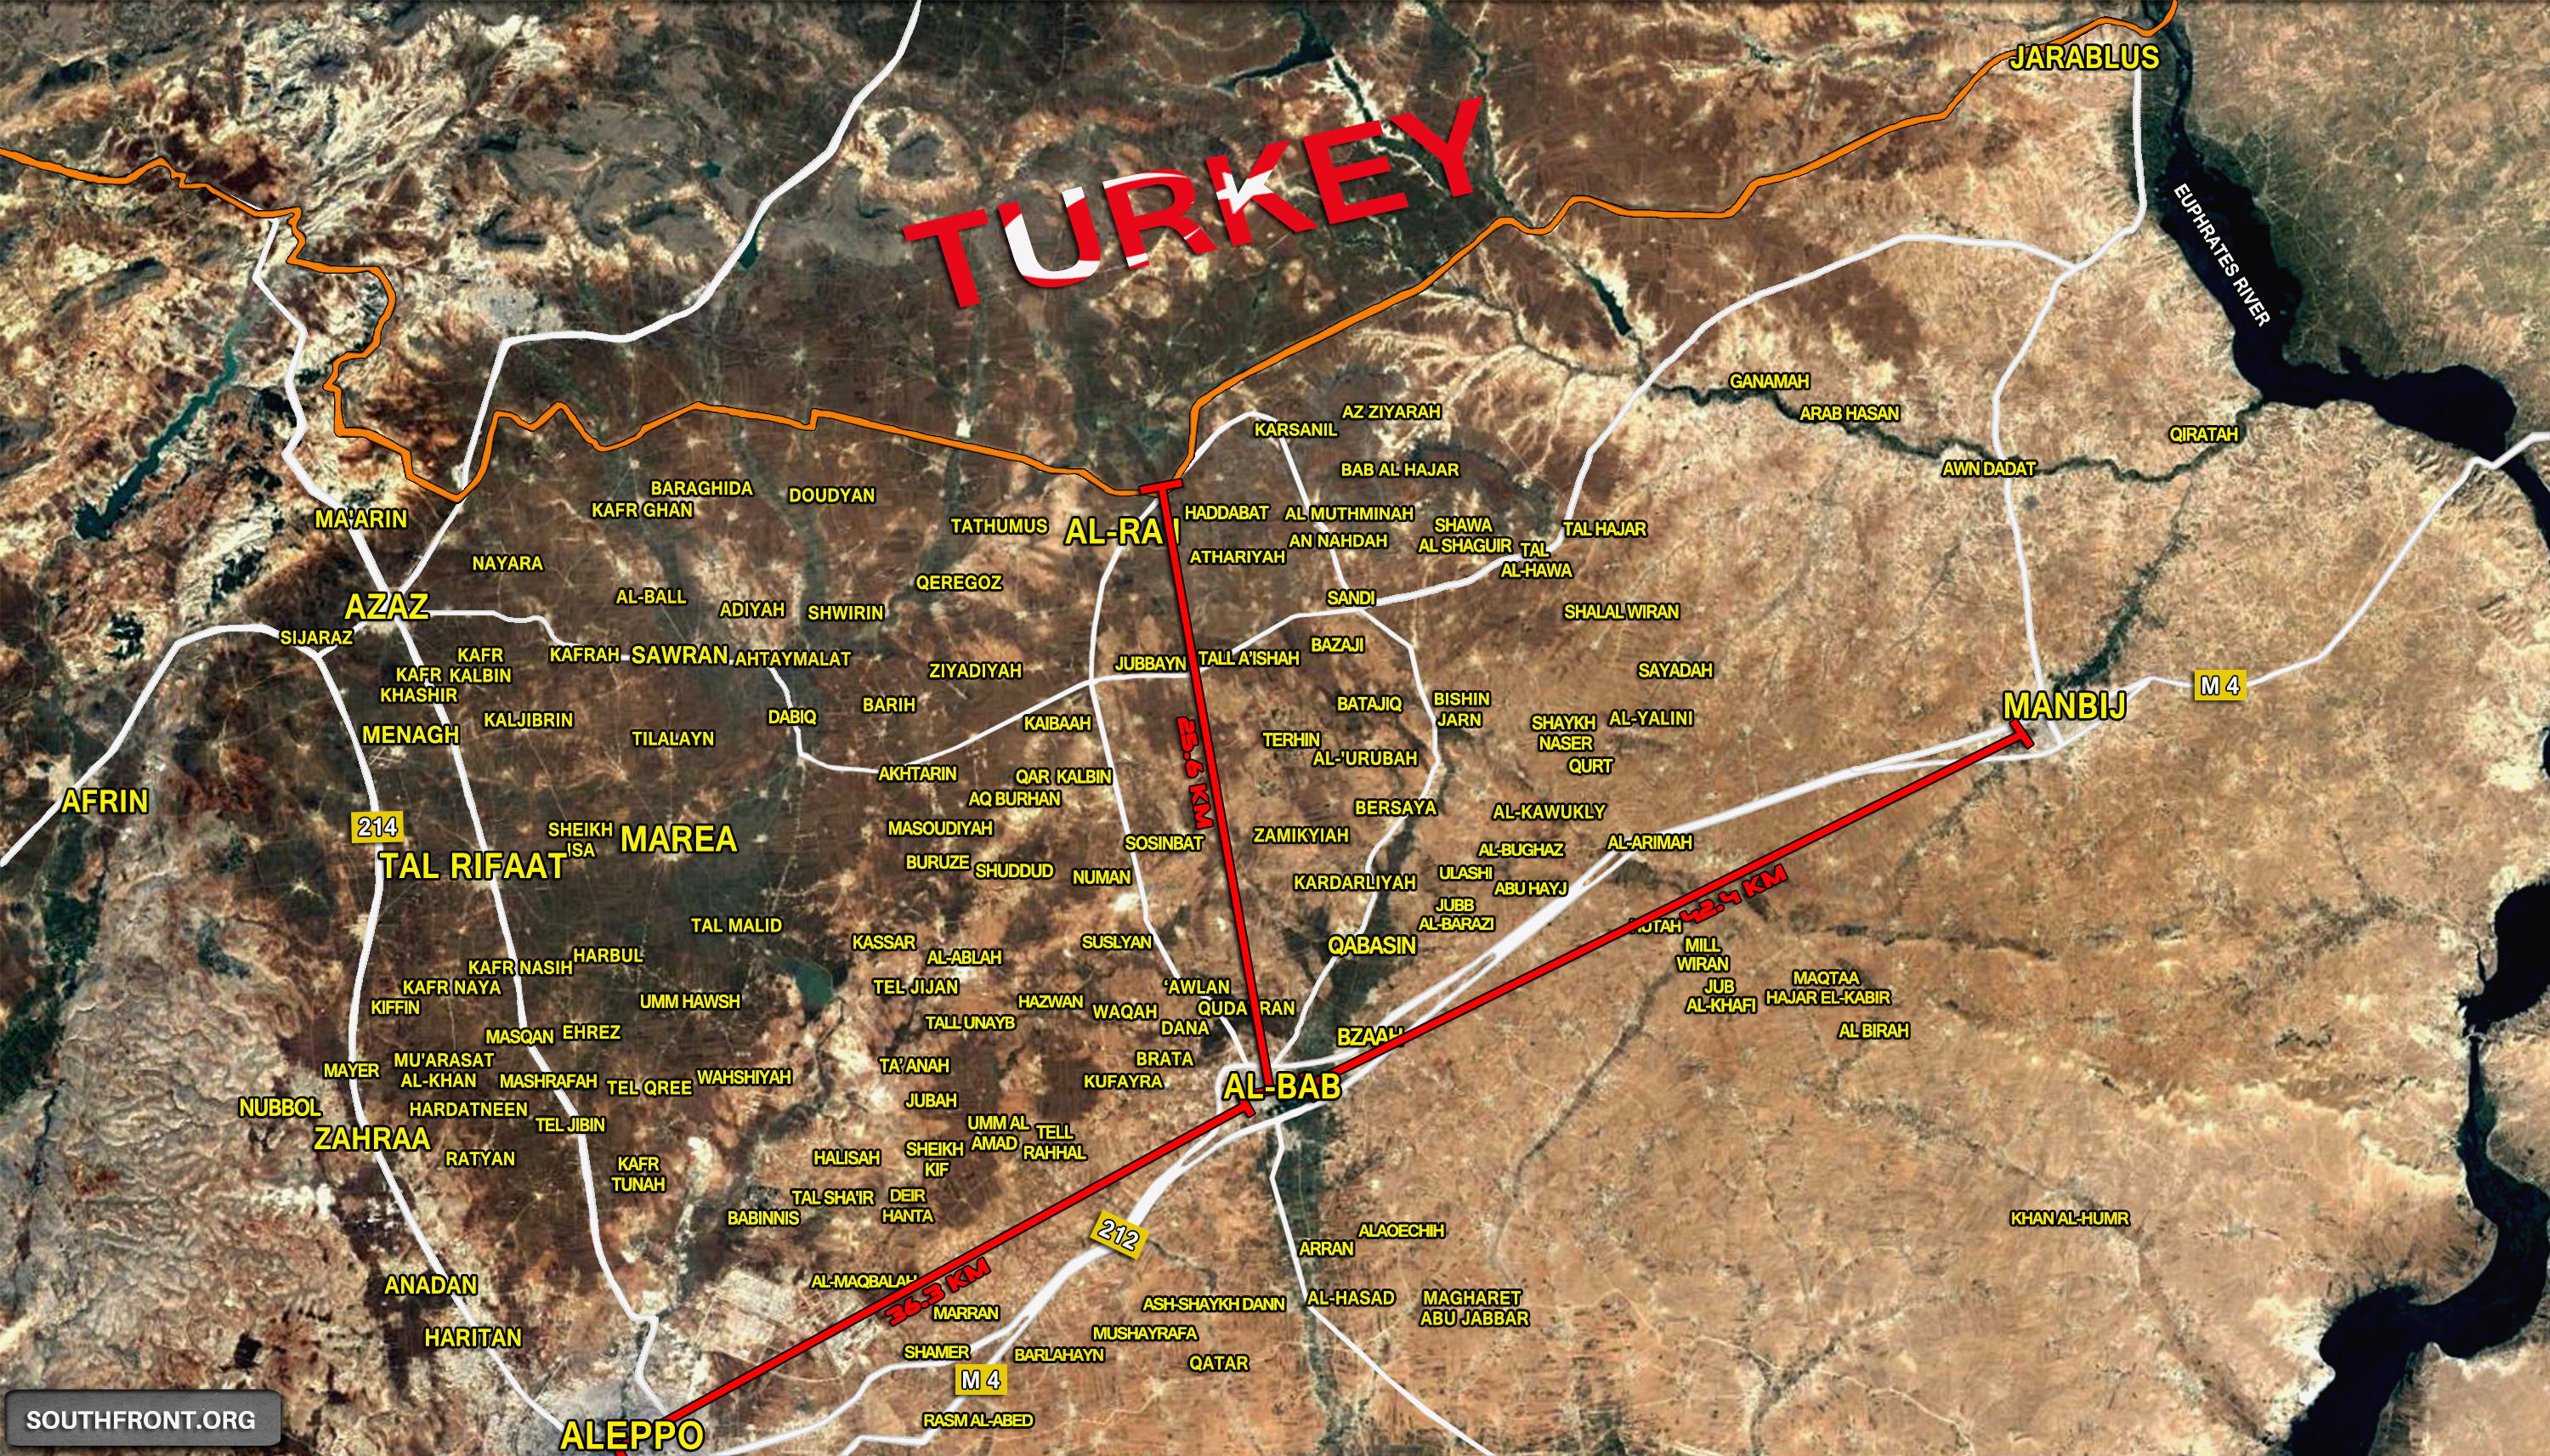 Stronghold Al-Bab: Whoever Controls Northern Syria Influences the Entire Middle East